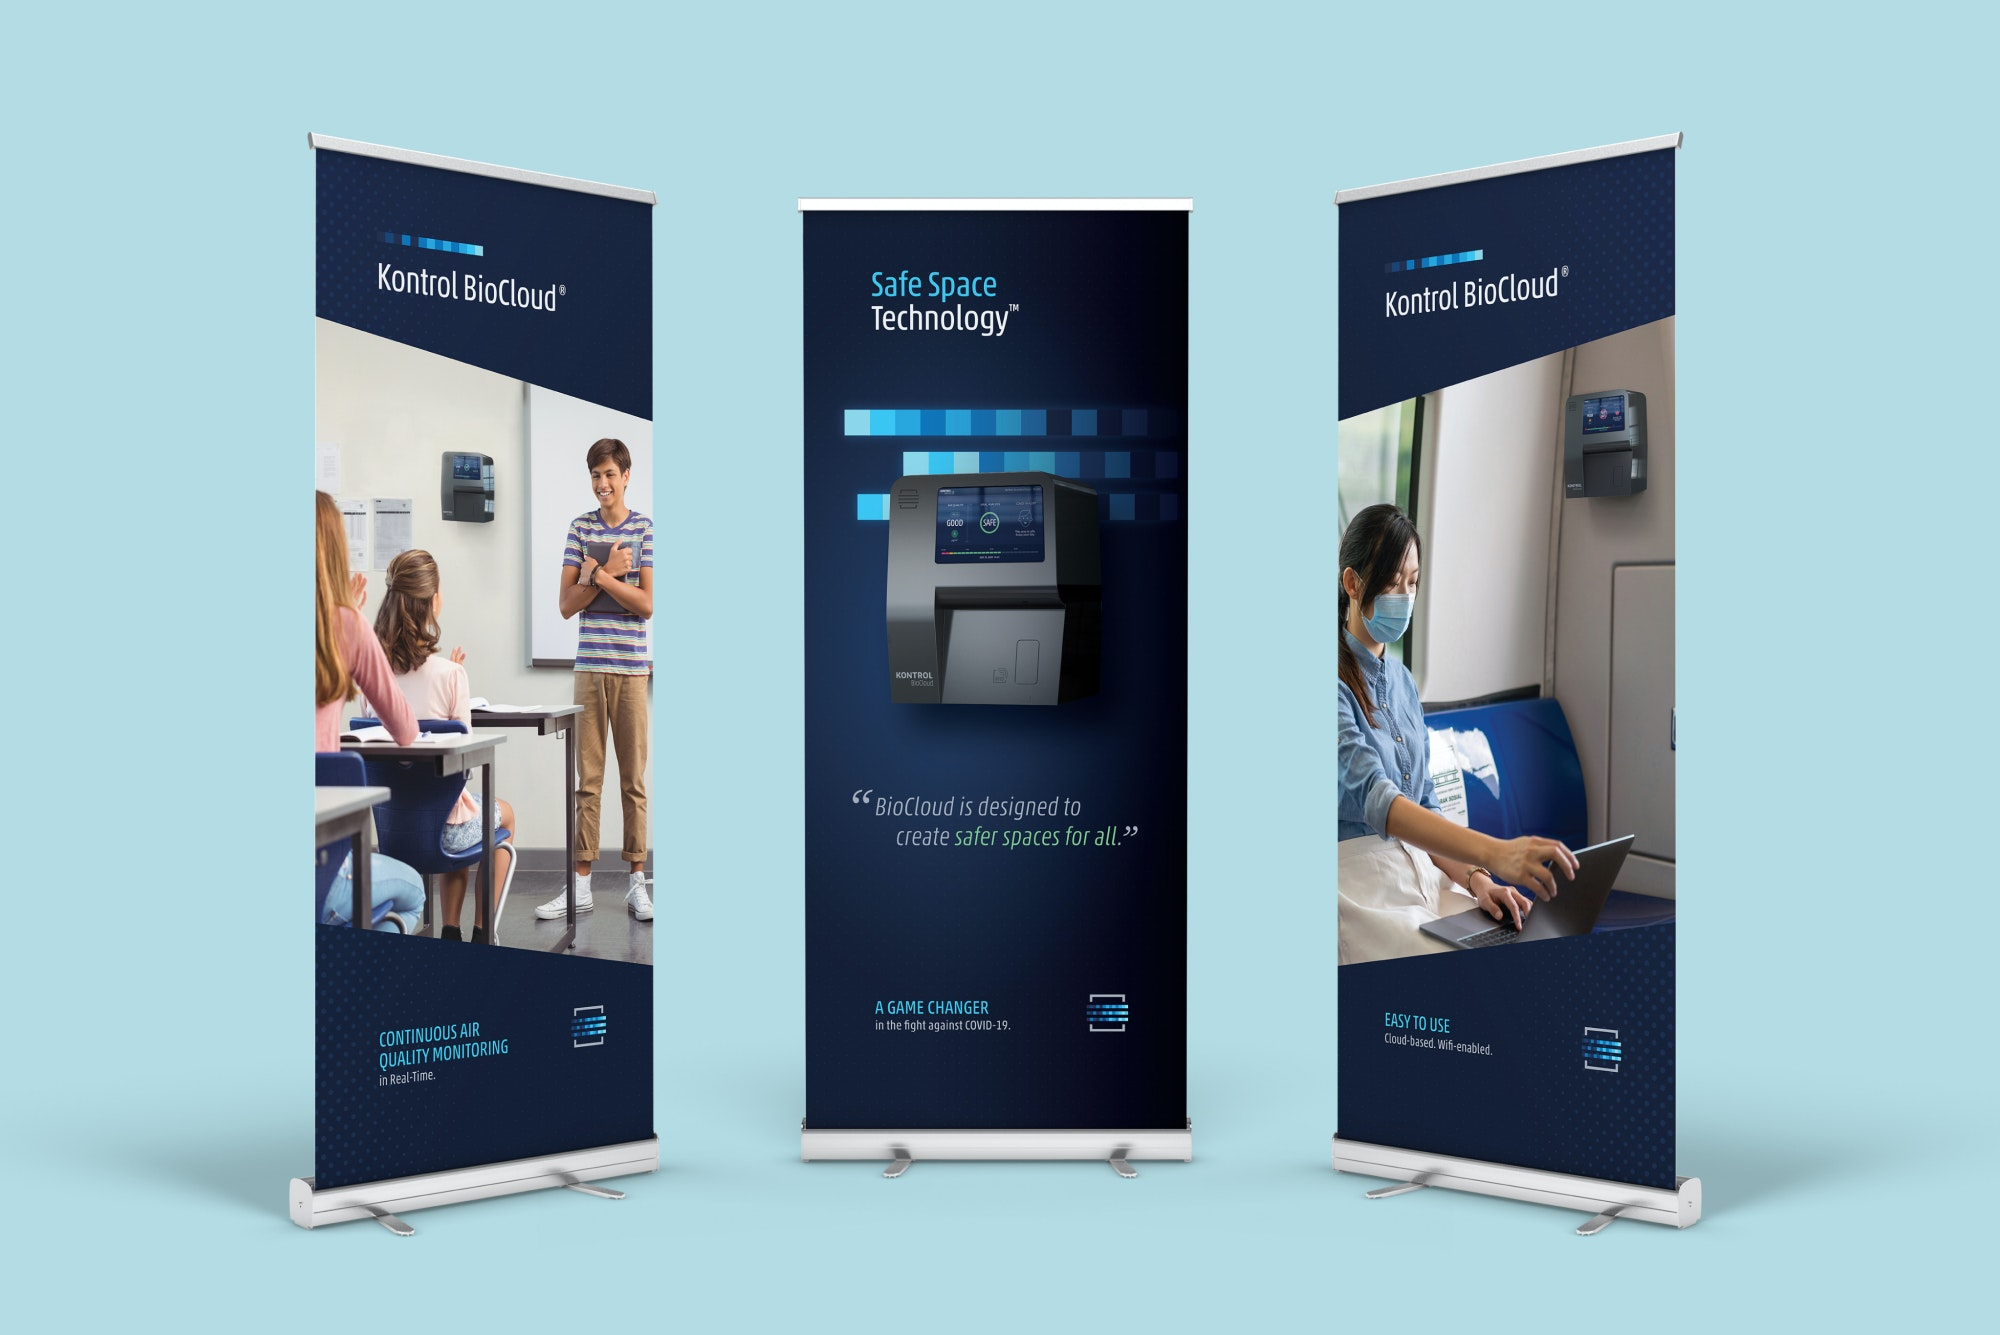 Three roll up banners displaying Kontrol Biocloud product